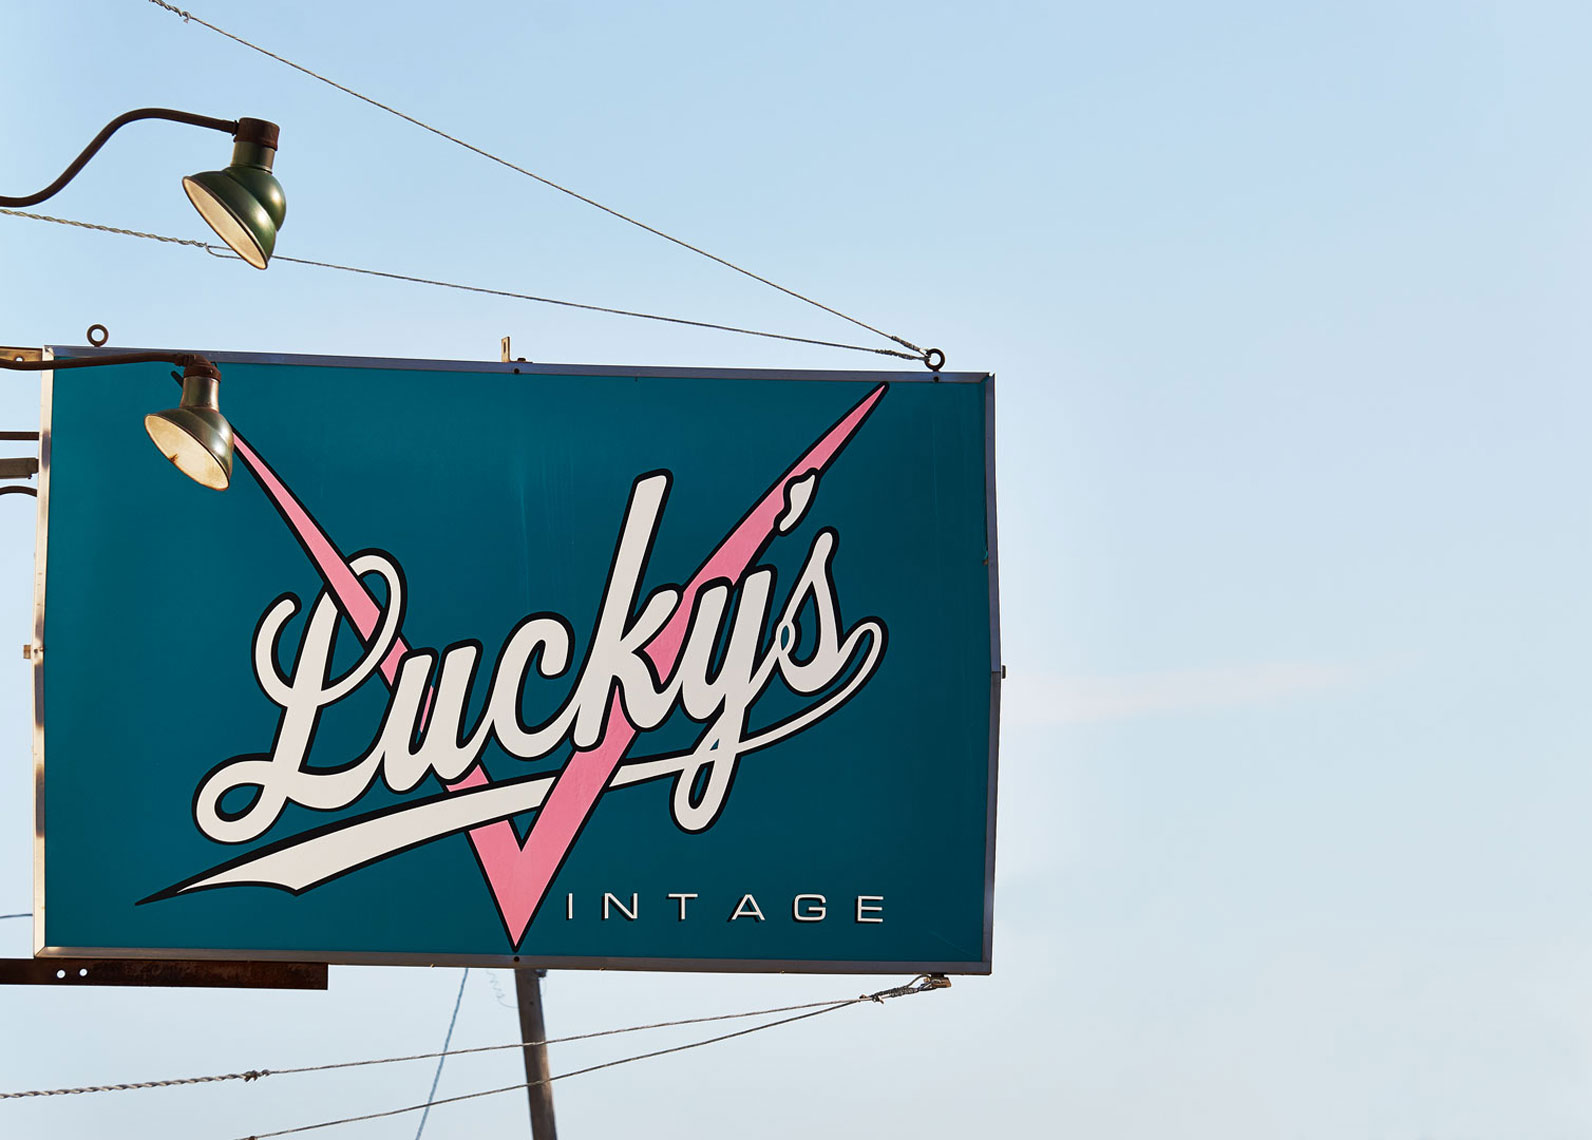 Luckys Vintage Sign